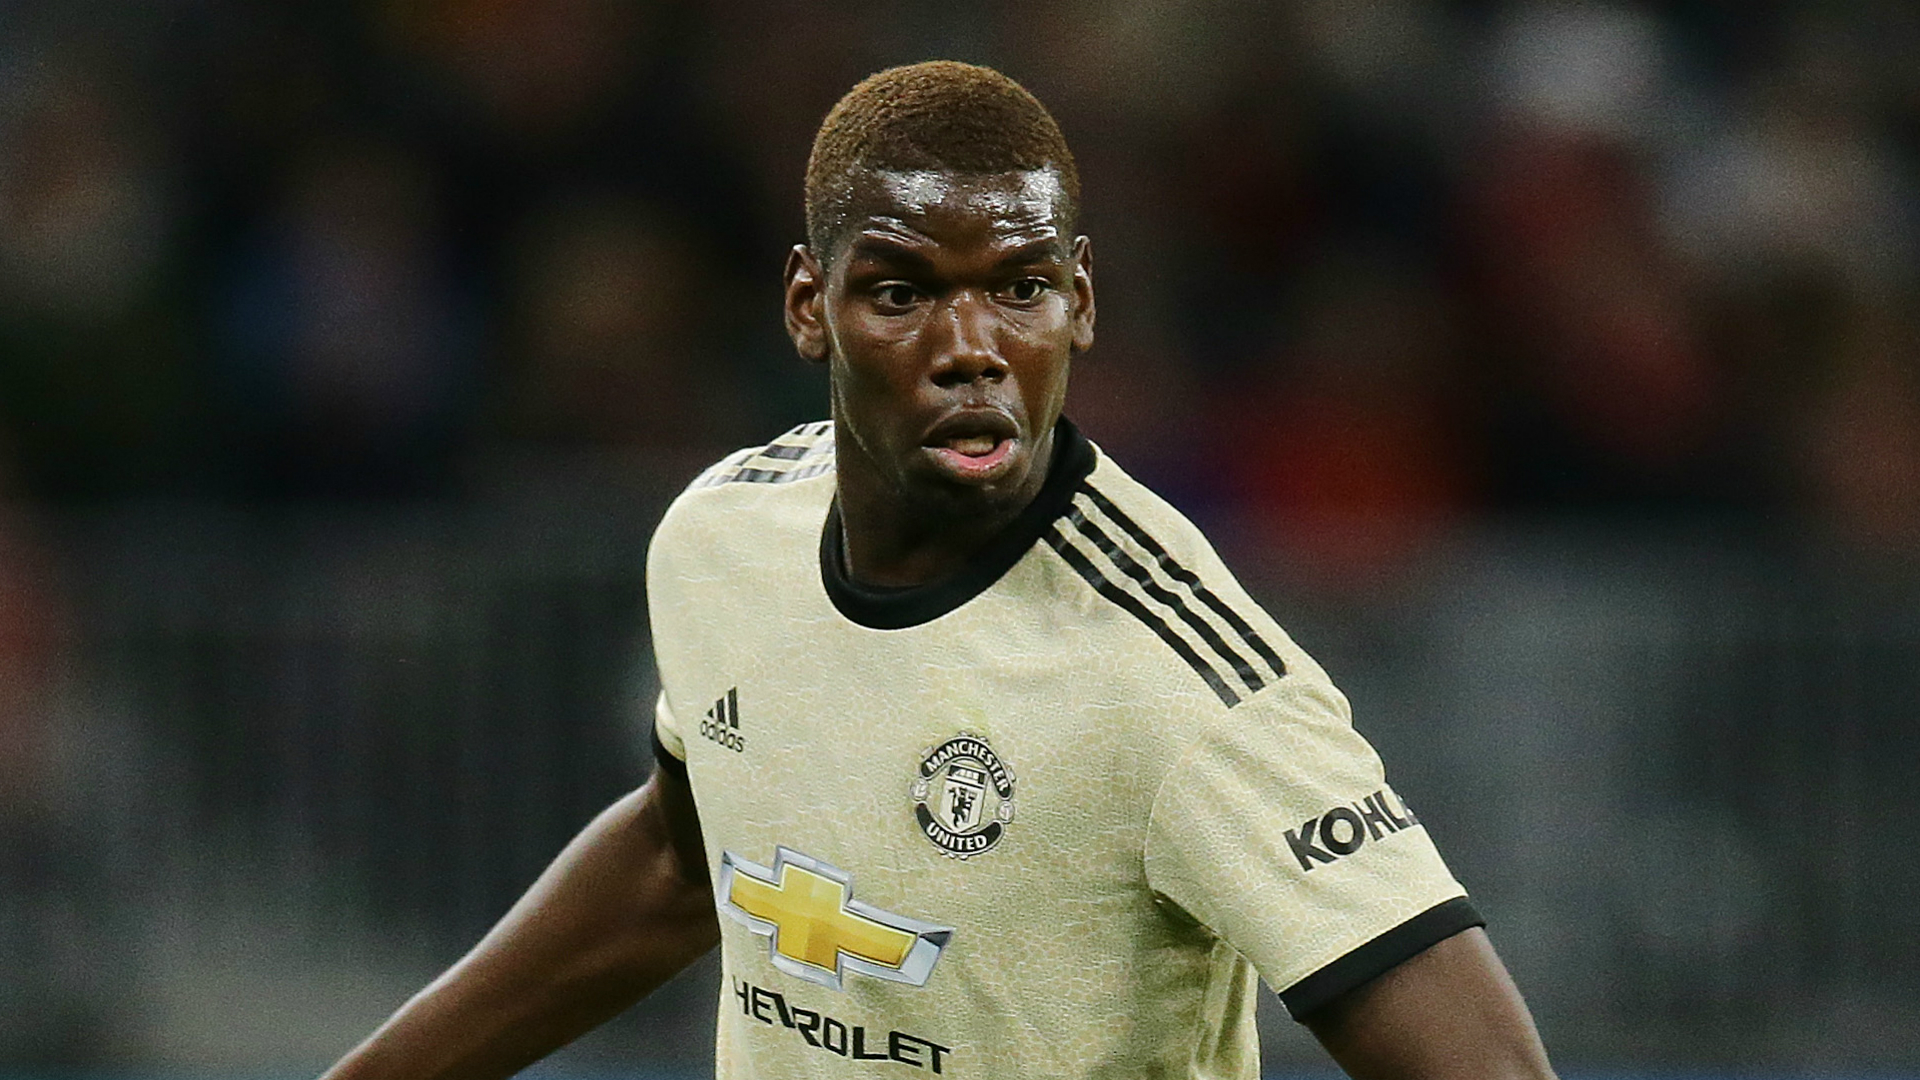 Pogba impresses as Manchester United edge past plucky Perth Glory